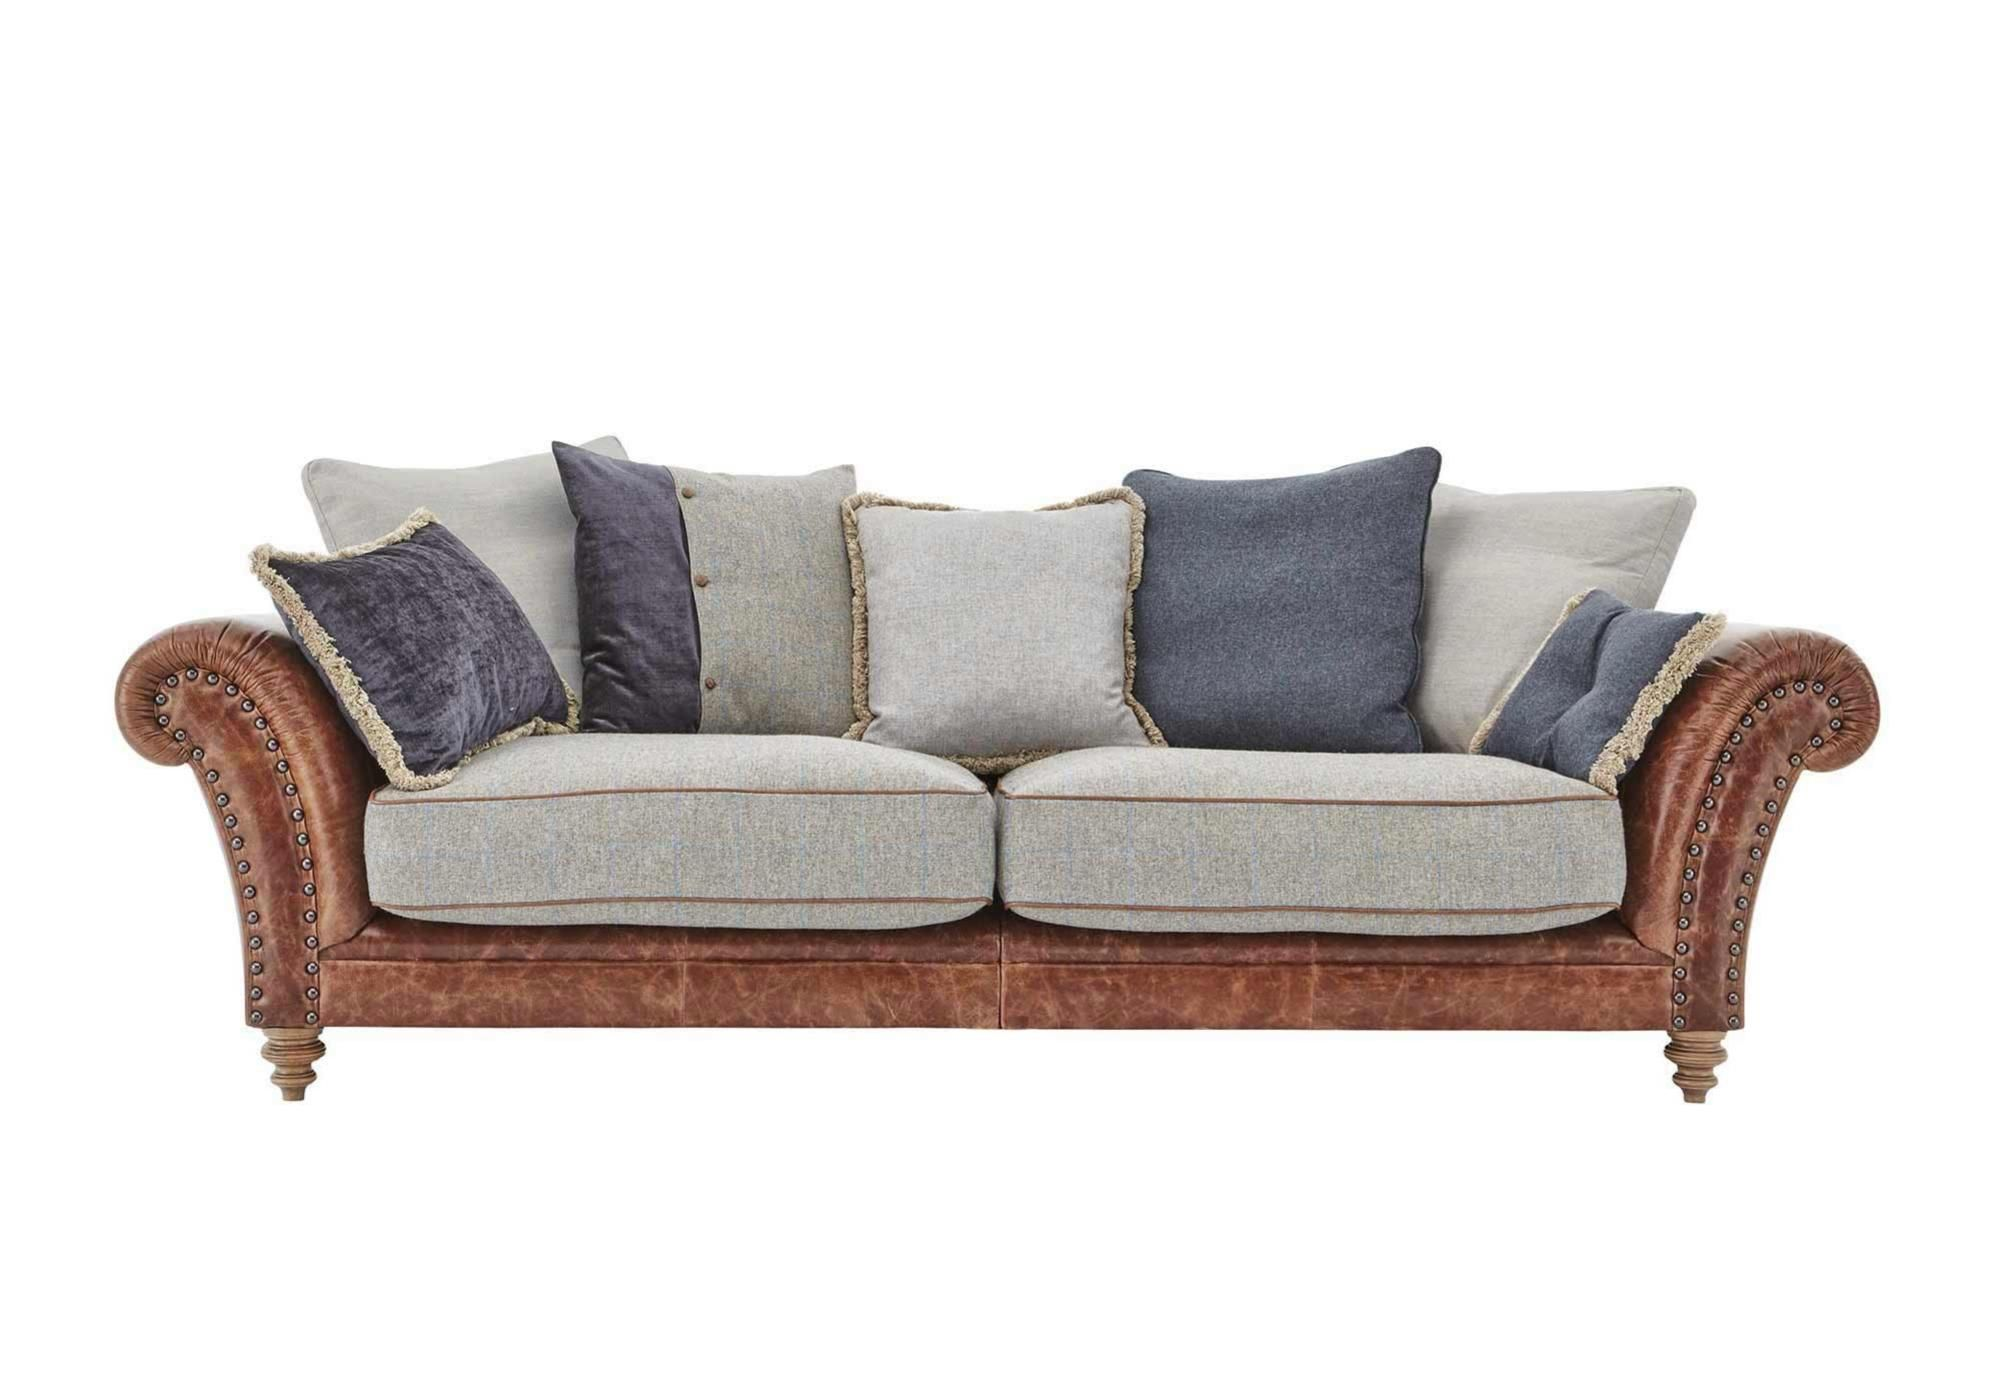 Furniture Village Hartford Sofa The Westwood Three Seater Leather Sofa With Large Soft Scatter